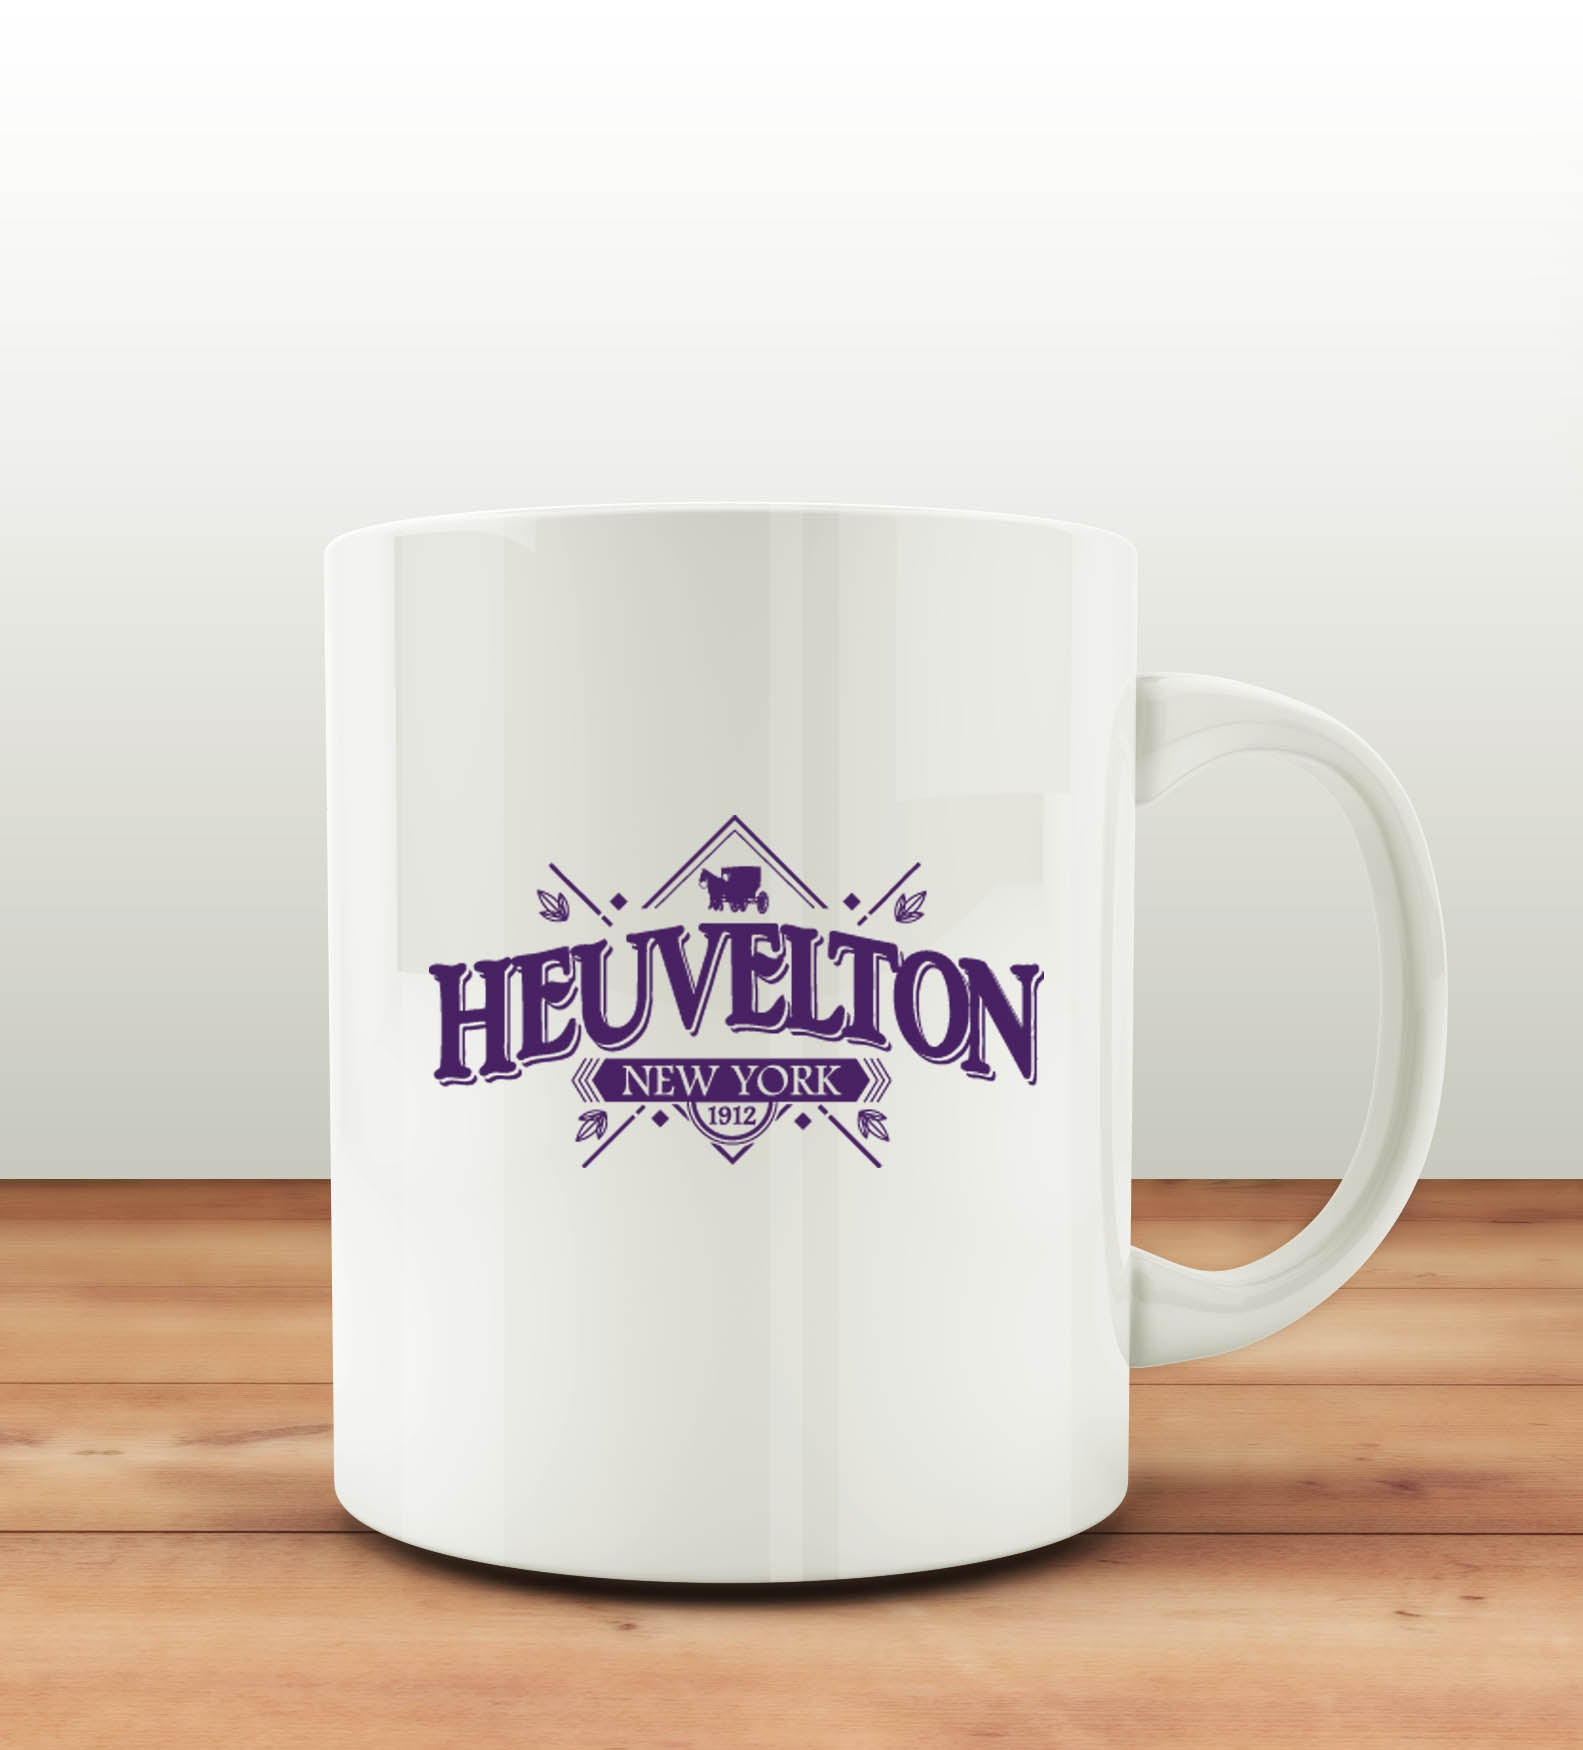 Heuvelton Ceramic Coffee Mug